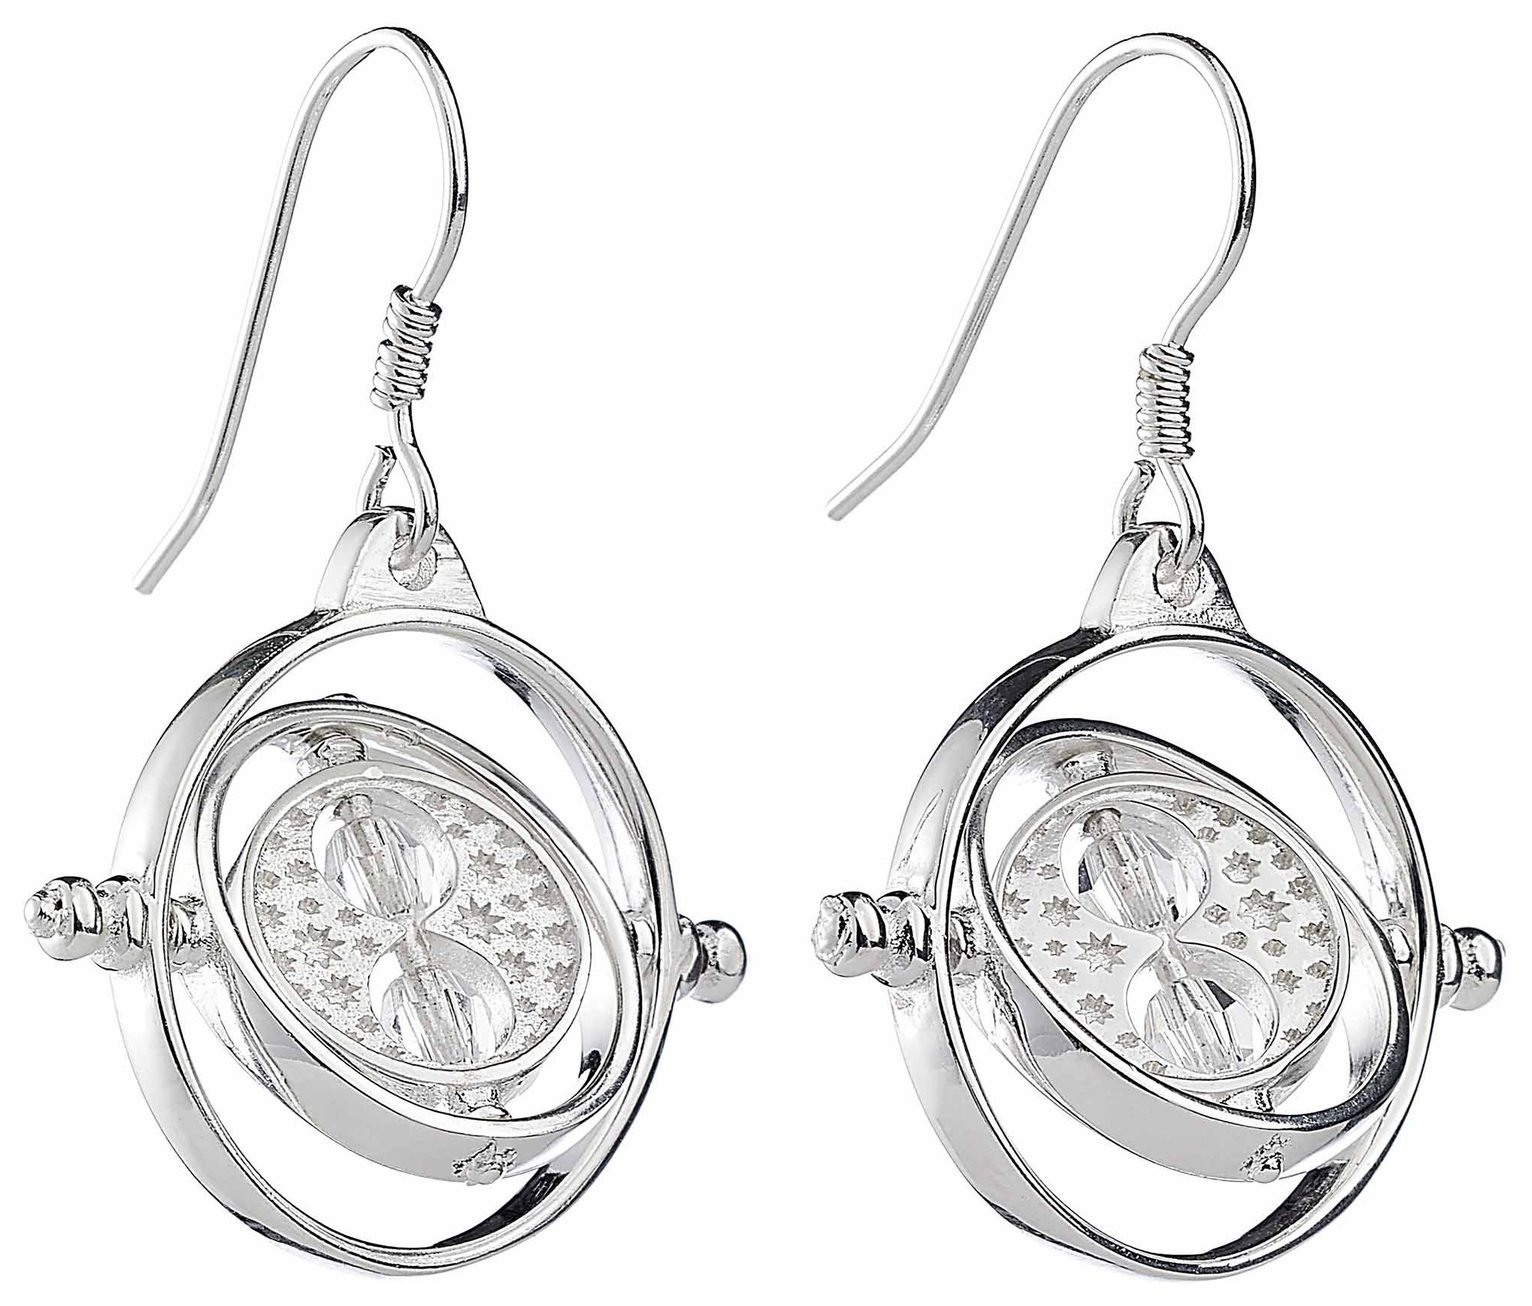 Harry Potter Time Turner Earrings with Crsytals